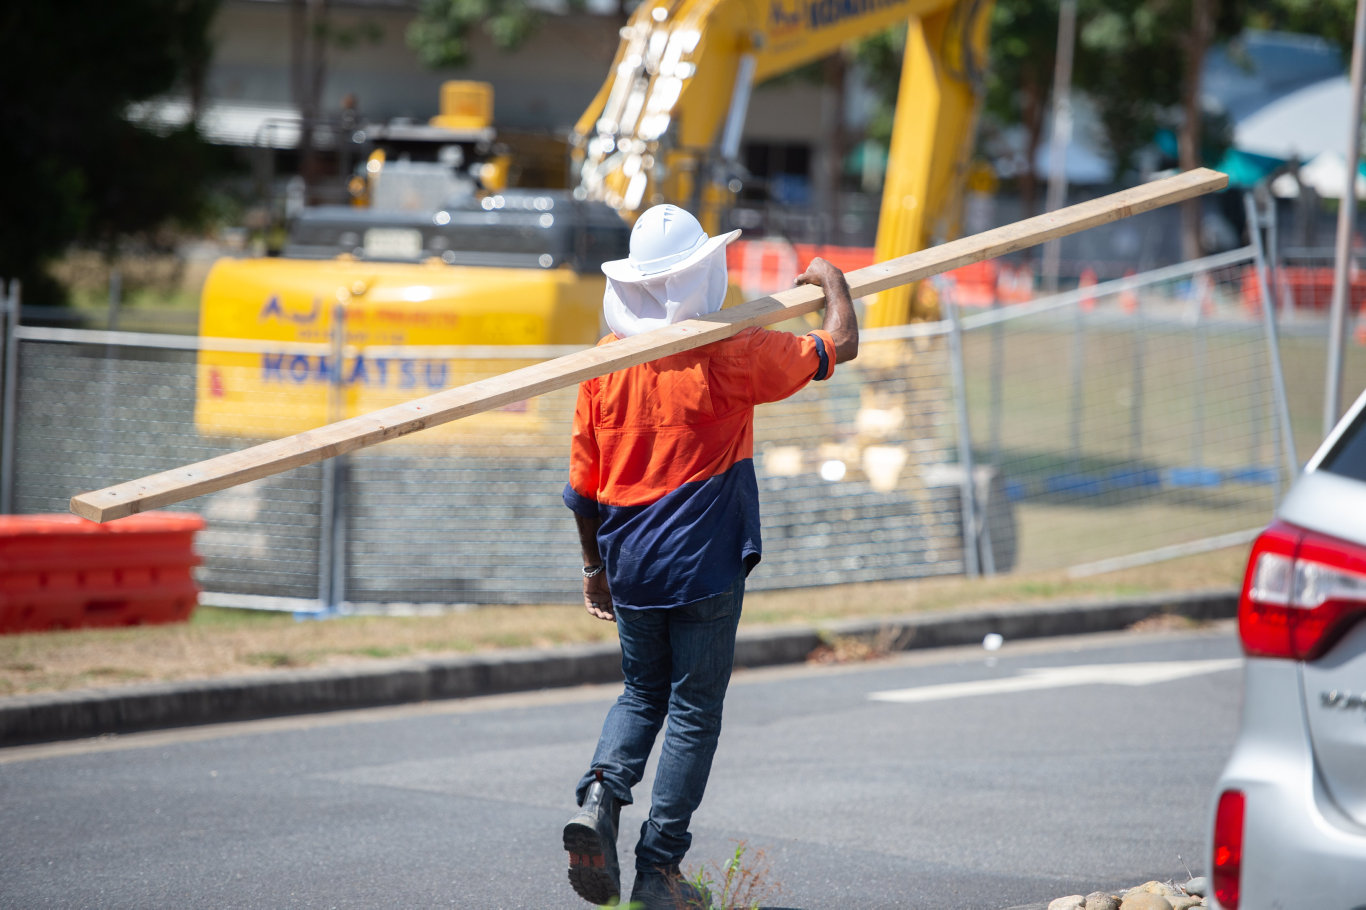 Work continues on the $190 million upgrade of the Coffs Harbour Health Campus.